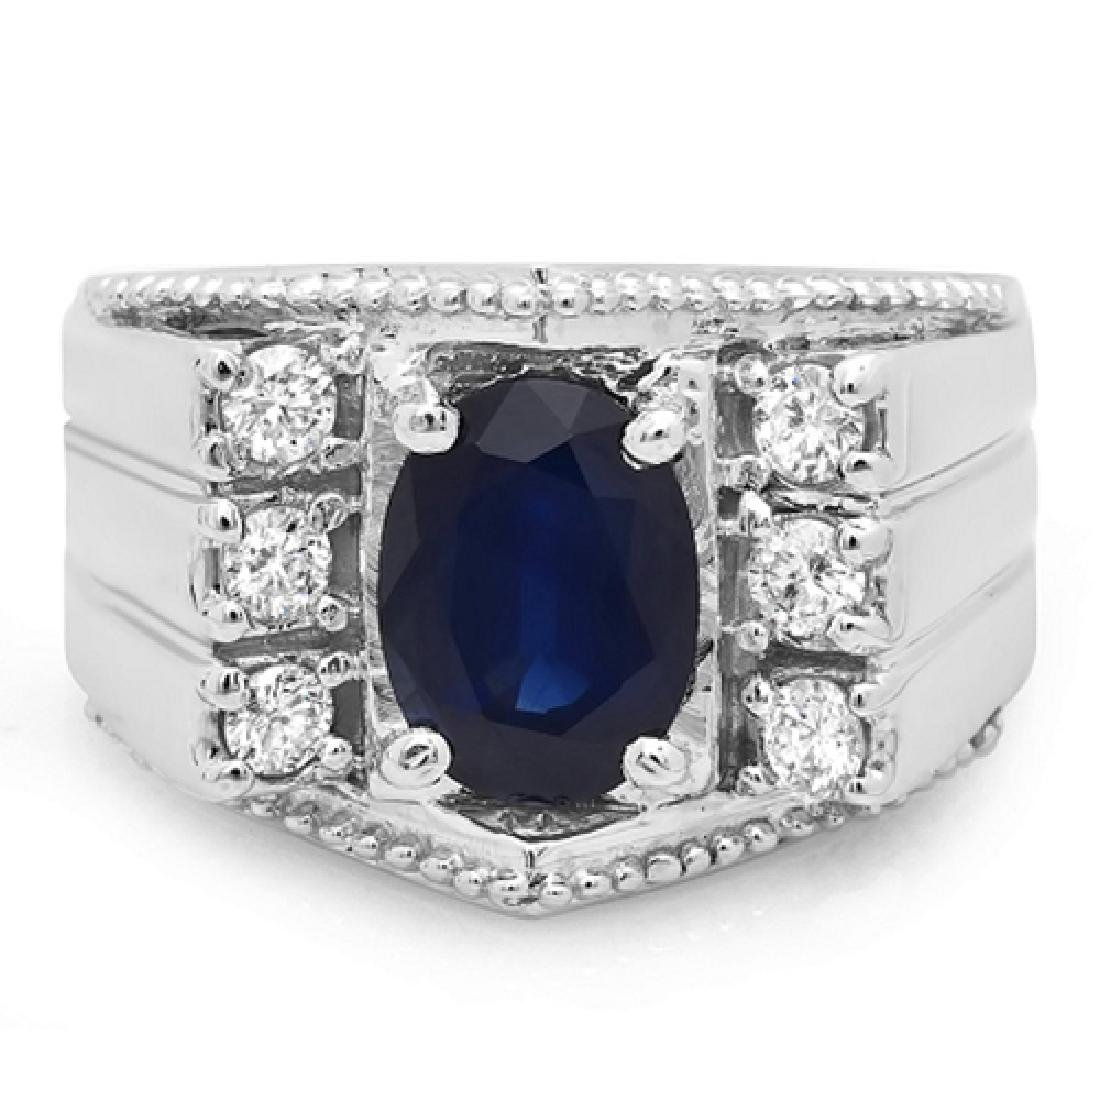 Mens 3.60 Carat Natural Sapphire 18K Solid White Gold - 2